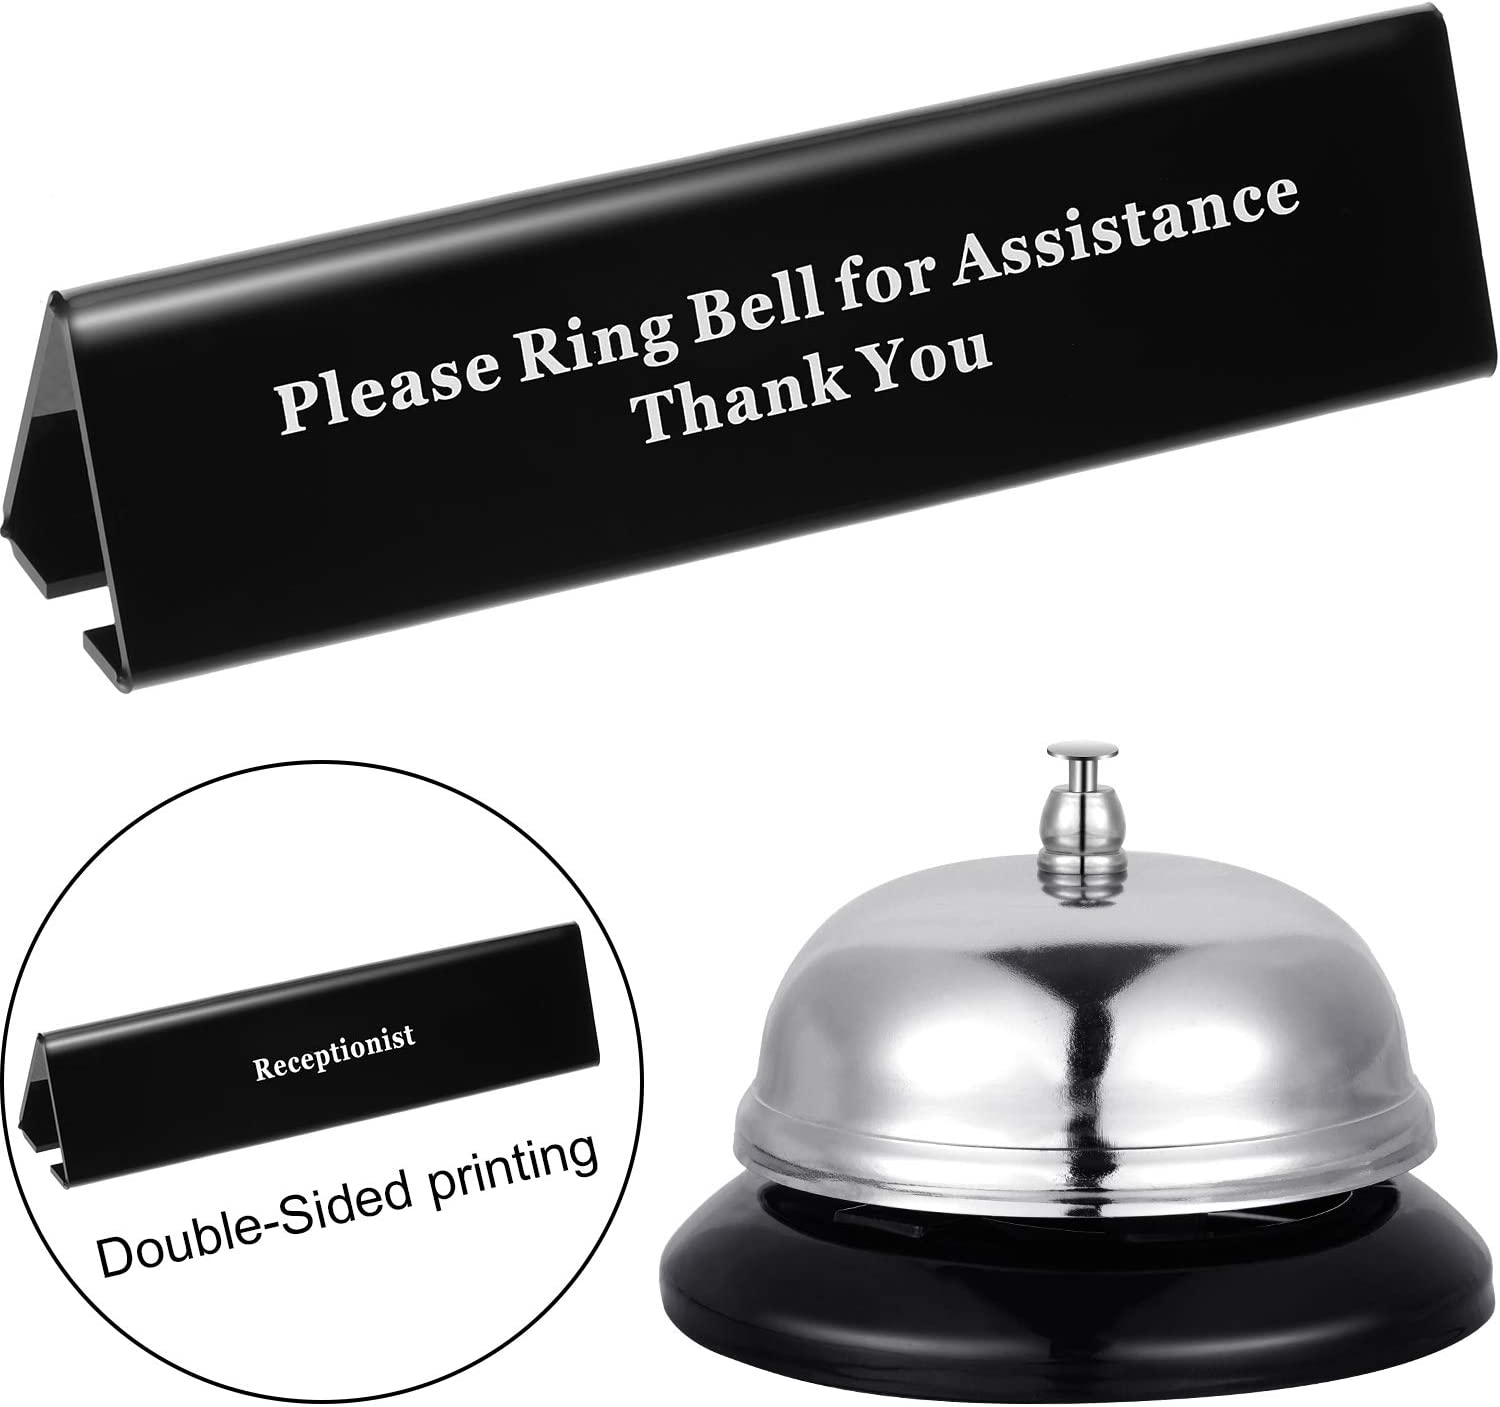 Desk Service Dinner Bell Metal Construction Call Bell and Double-Side No Receptionist Sign, Please Ring Bell Sign for Service Assistance for Hotels, Schools, Restaurants, Reception Areas, Hospitals